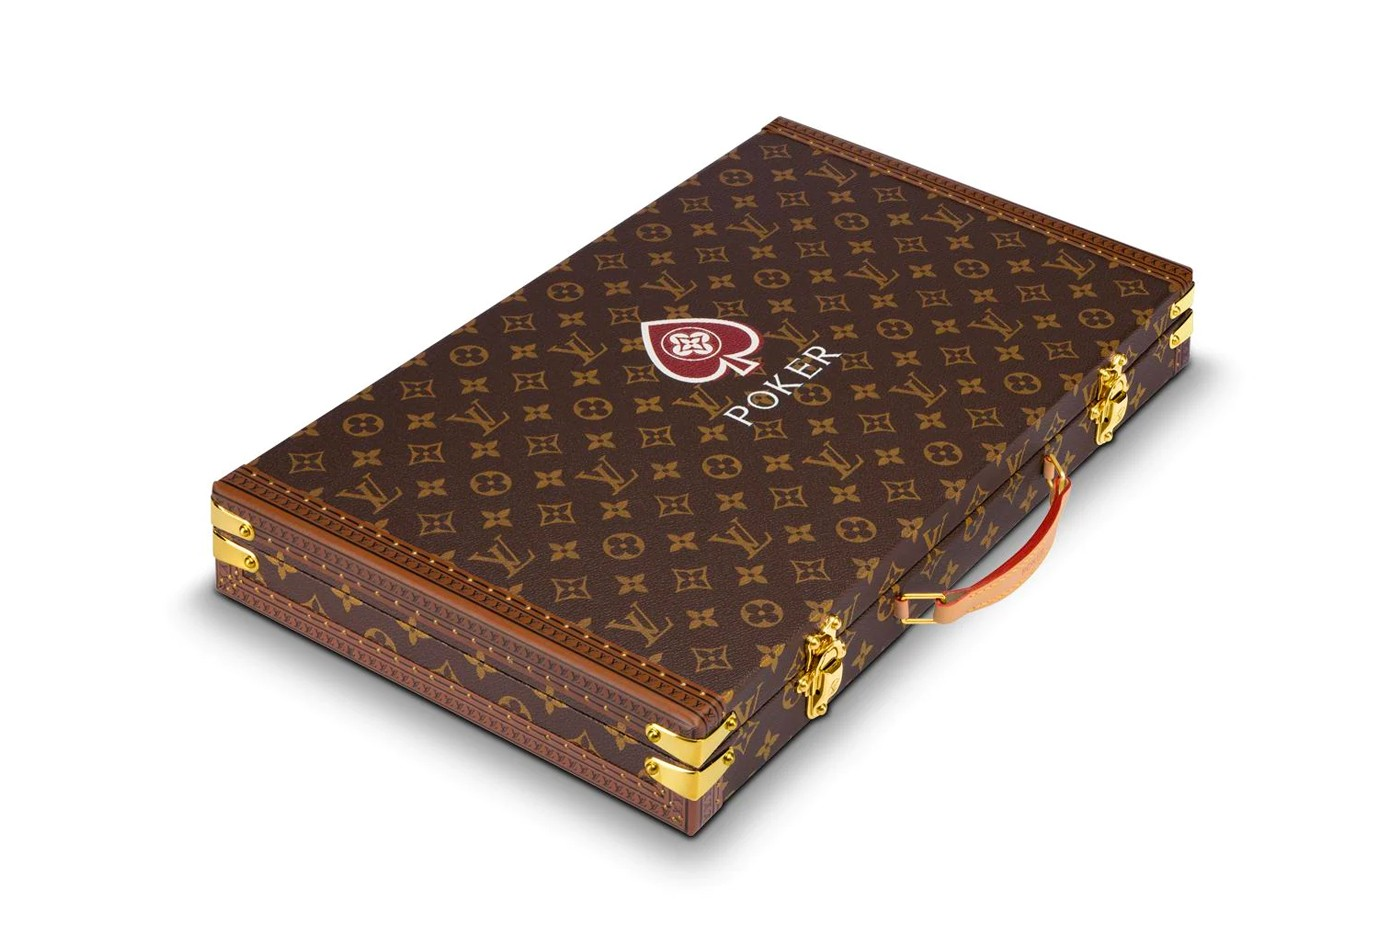 Louis vuitton monogram poker case release info